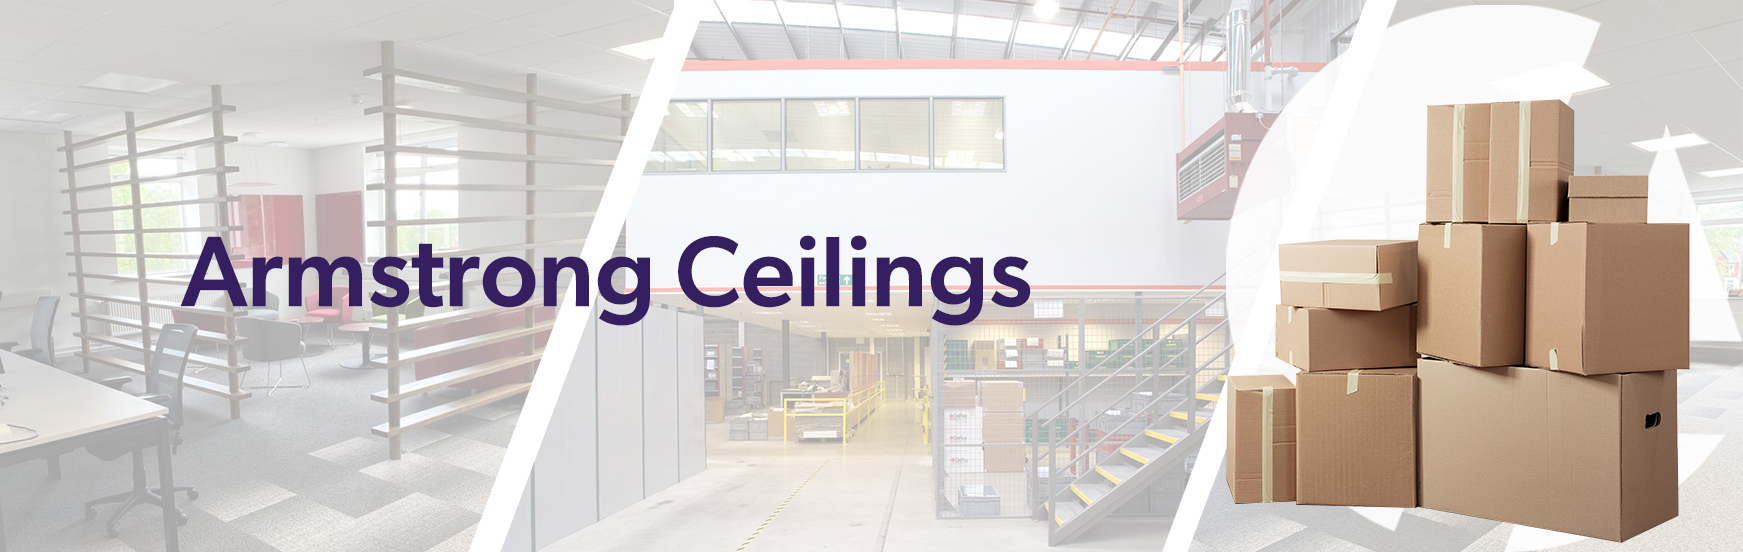 ceilings armstrong